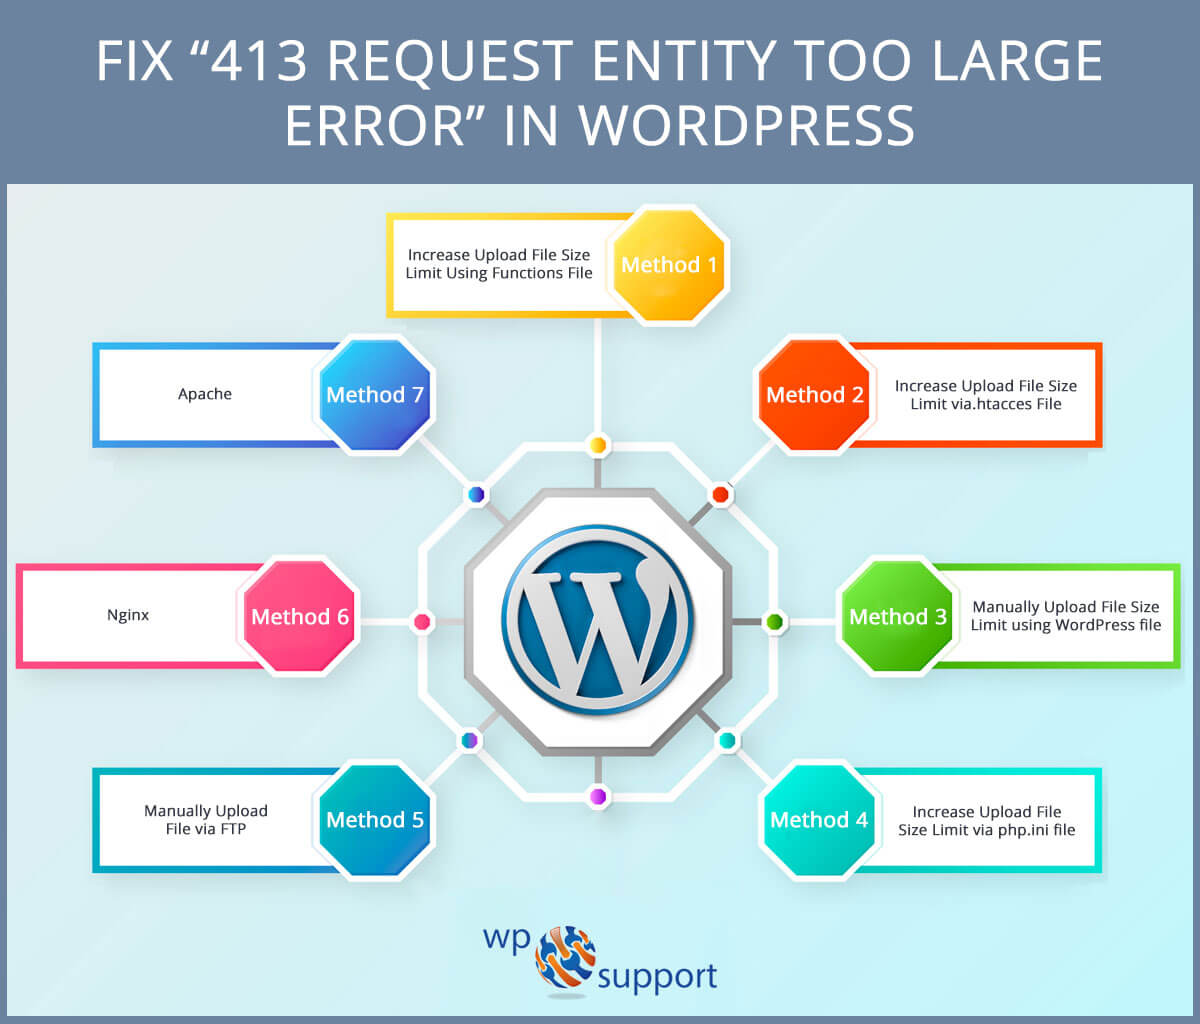 Fix 413 Request Entity Too Large Error In WordPress: Best Methods